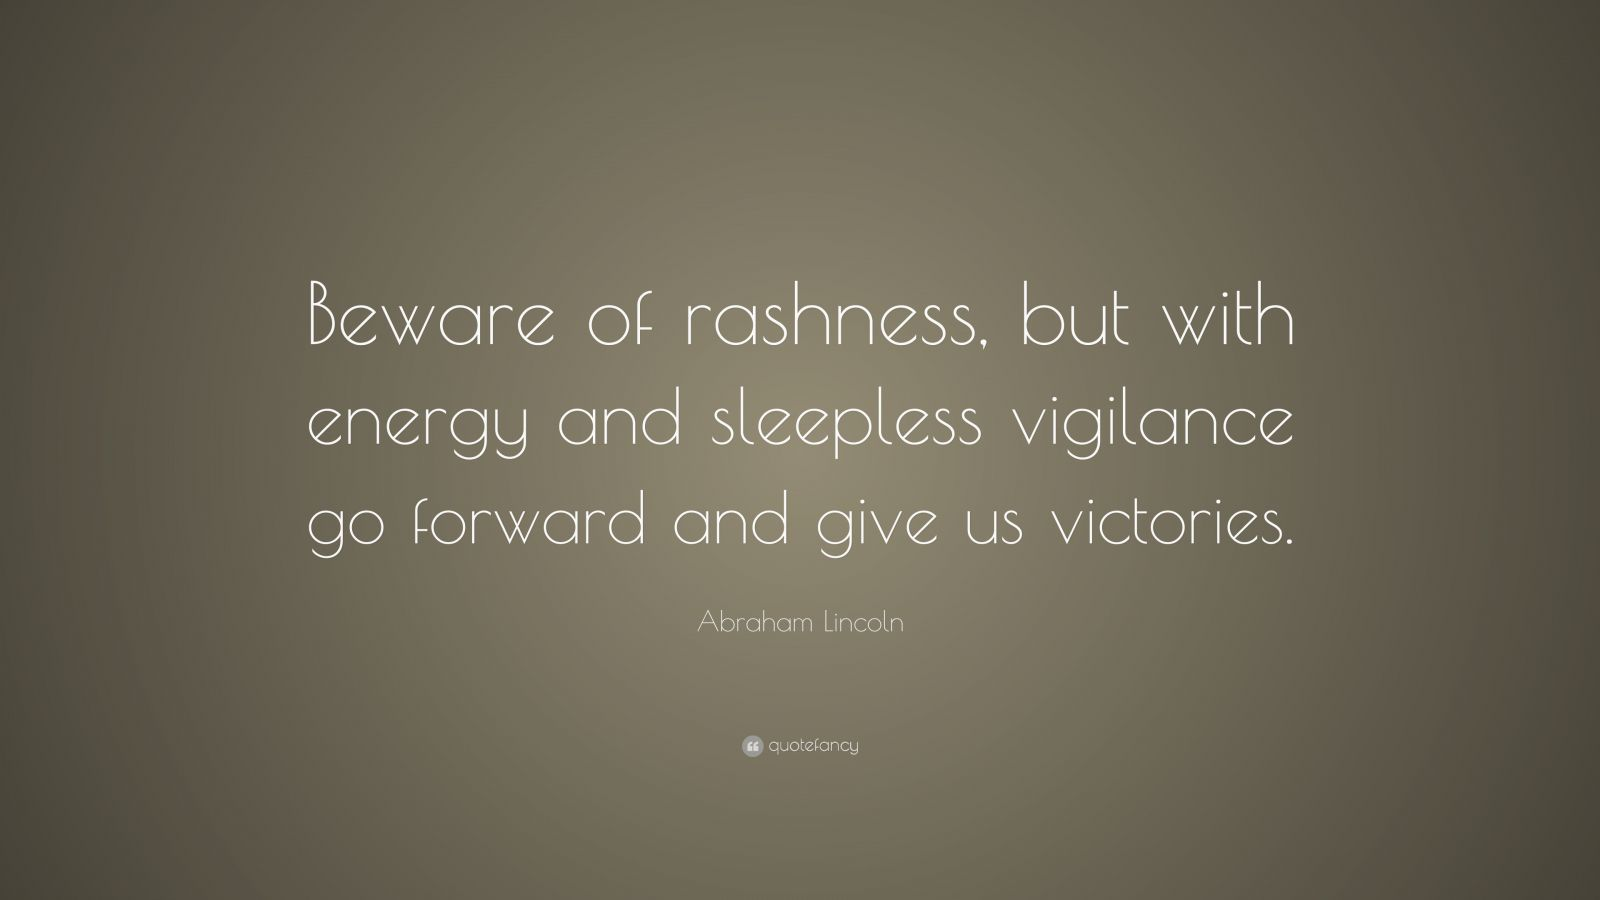 """Abraham Lincoln Quote: """"Beware of rashness, but with energy and sleepless vigilance go forward and give us victories."""""""